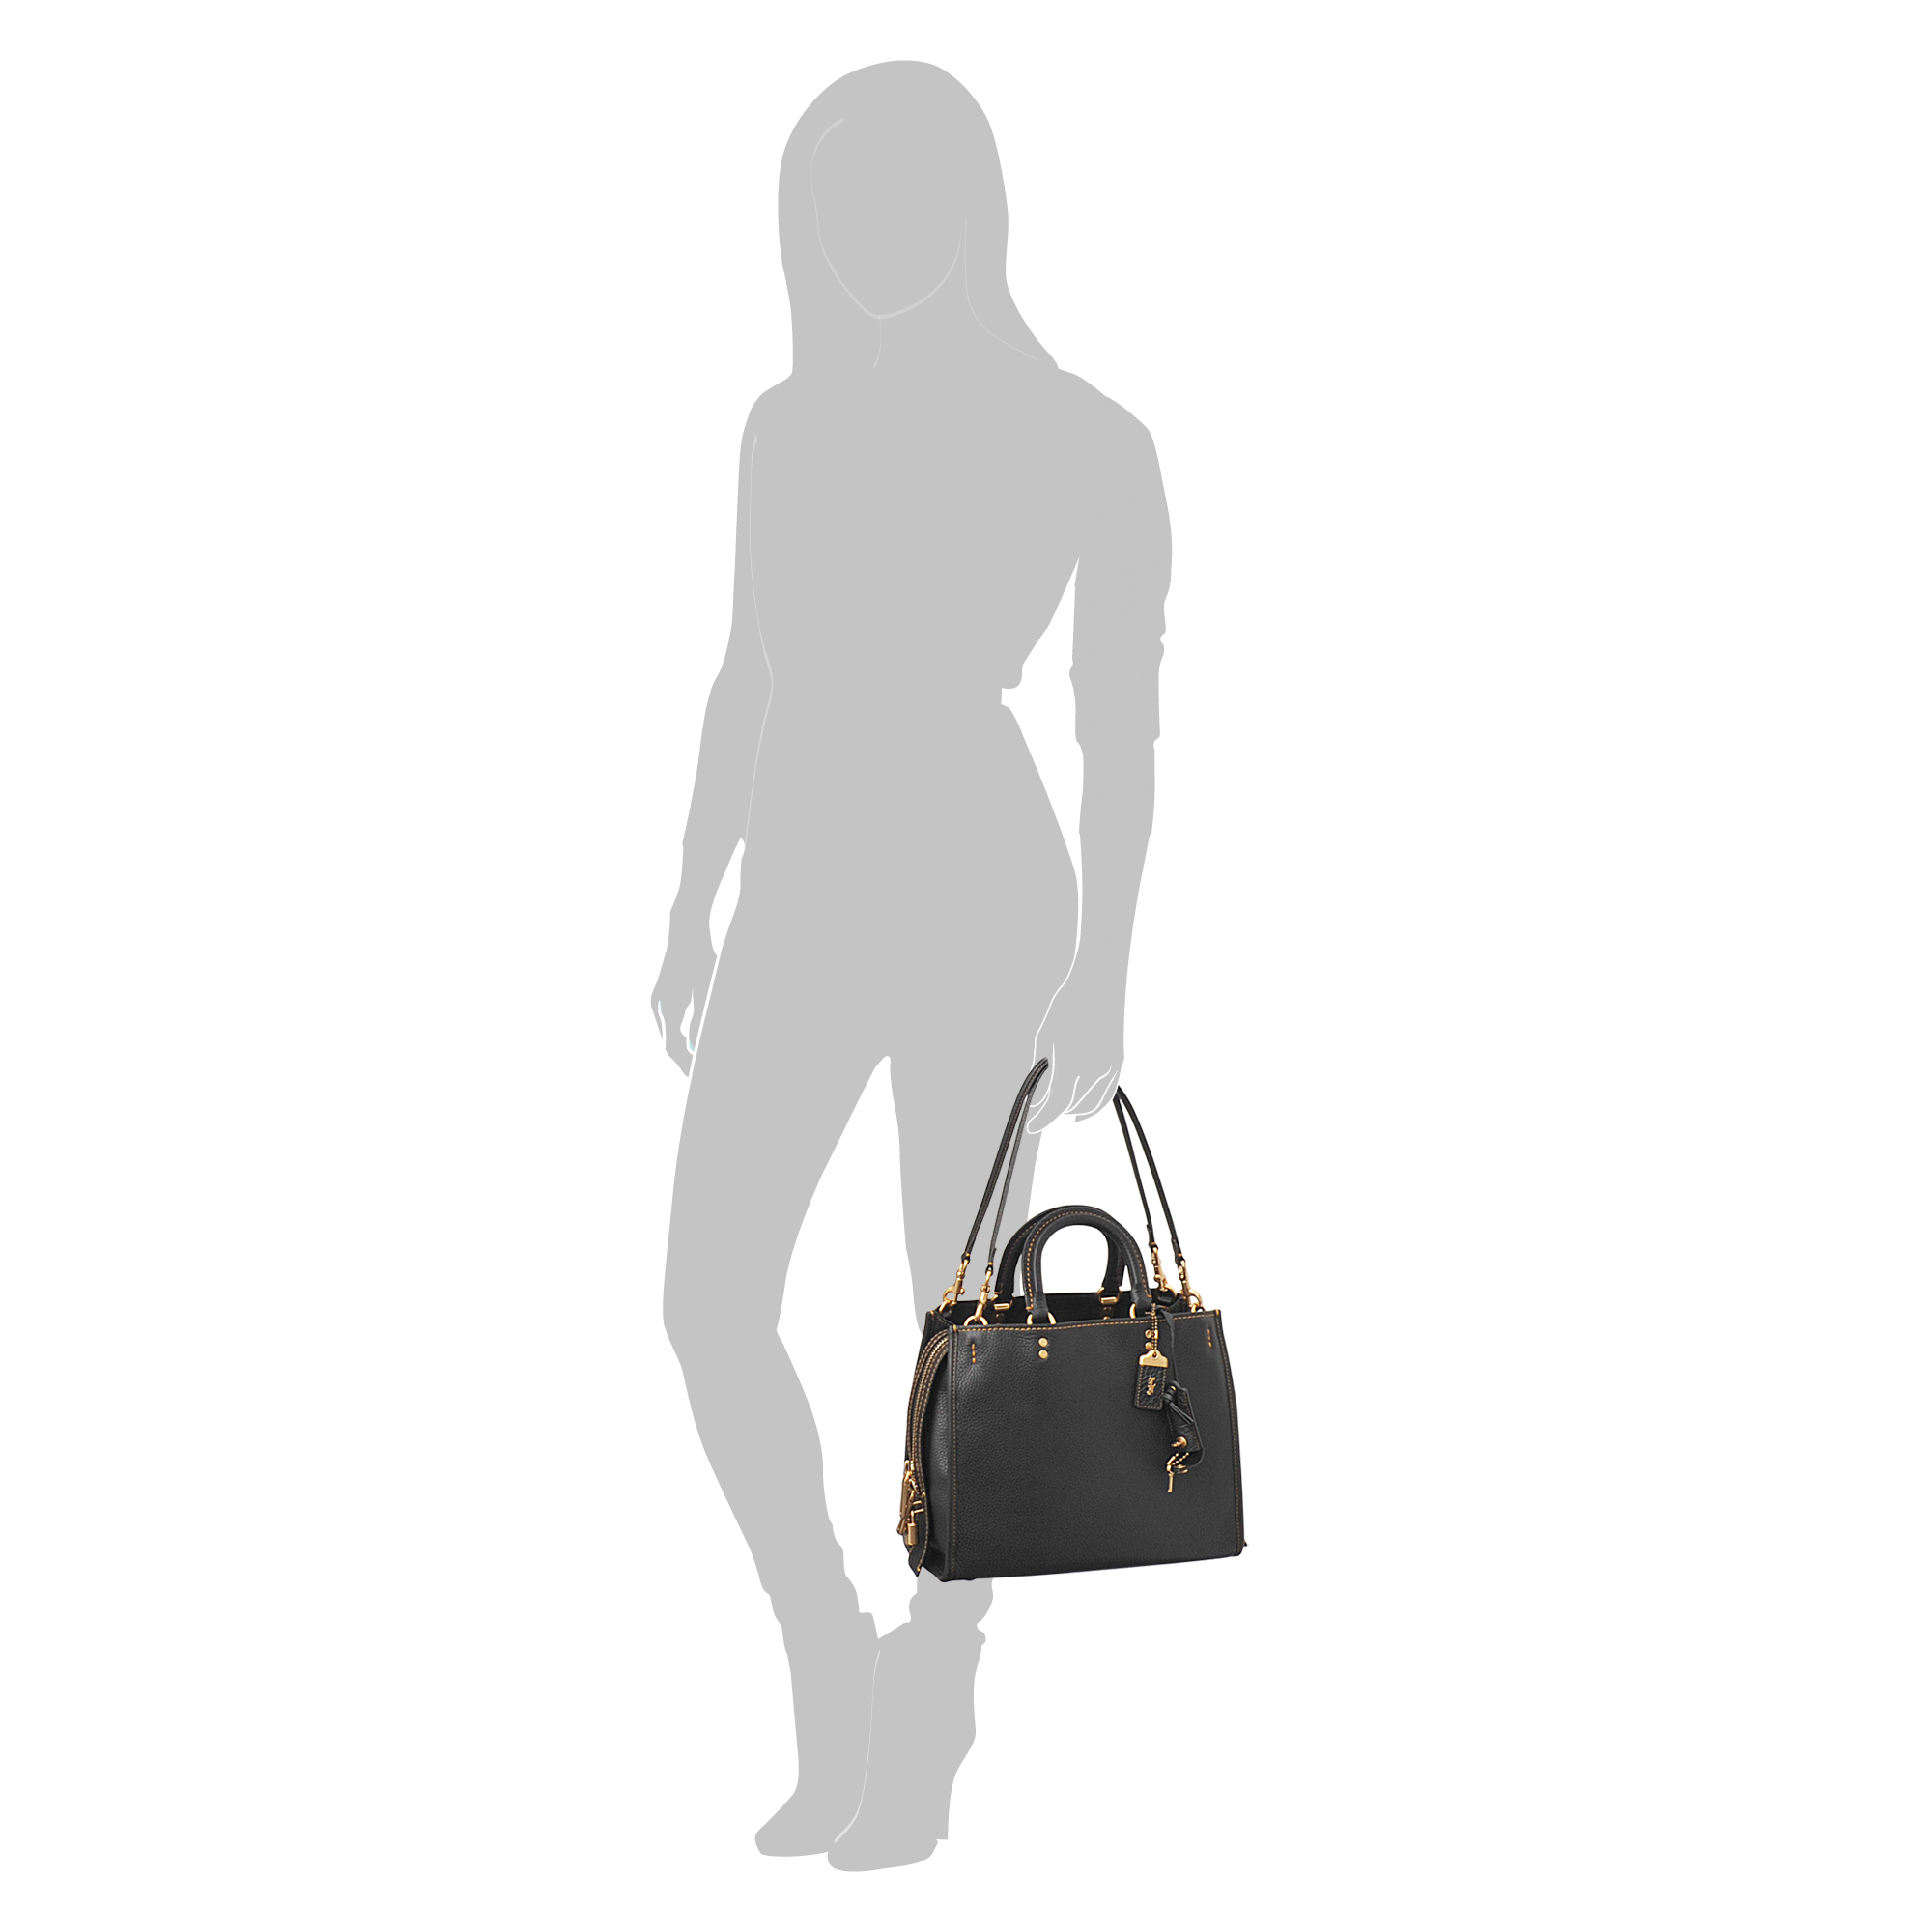 02334d1440 get lyst coach pebble leather rogue bag in black a9c82 eb1e4